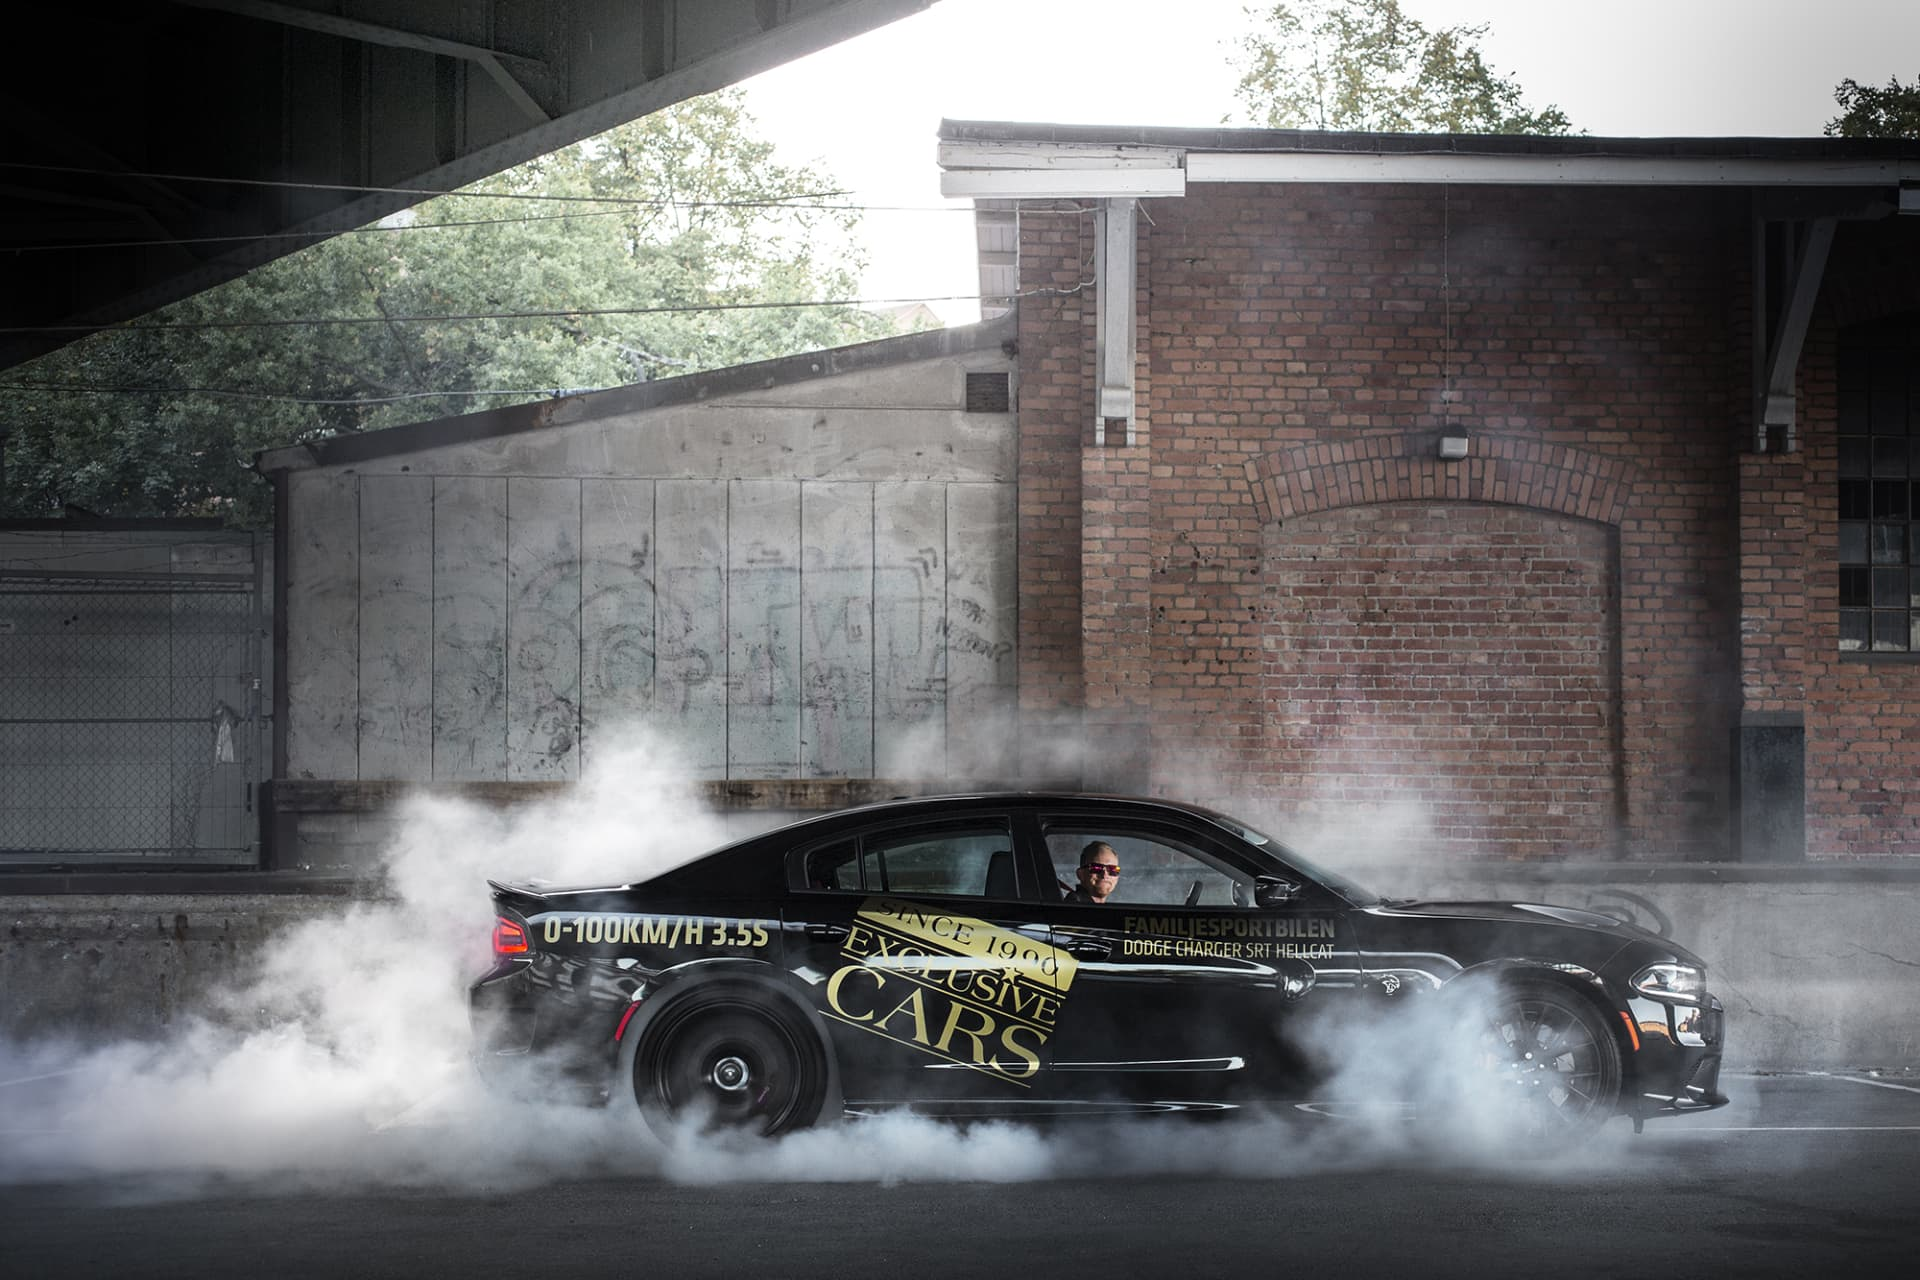 To avoid burnouts with a Dodger Charger Hellcat is just about impossible. The 717 horsepower and rear-wheel-drive will constantly leave a cloud of dust behind this American muscle car.